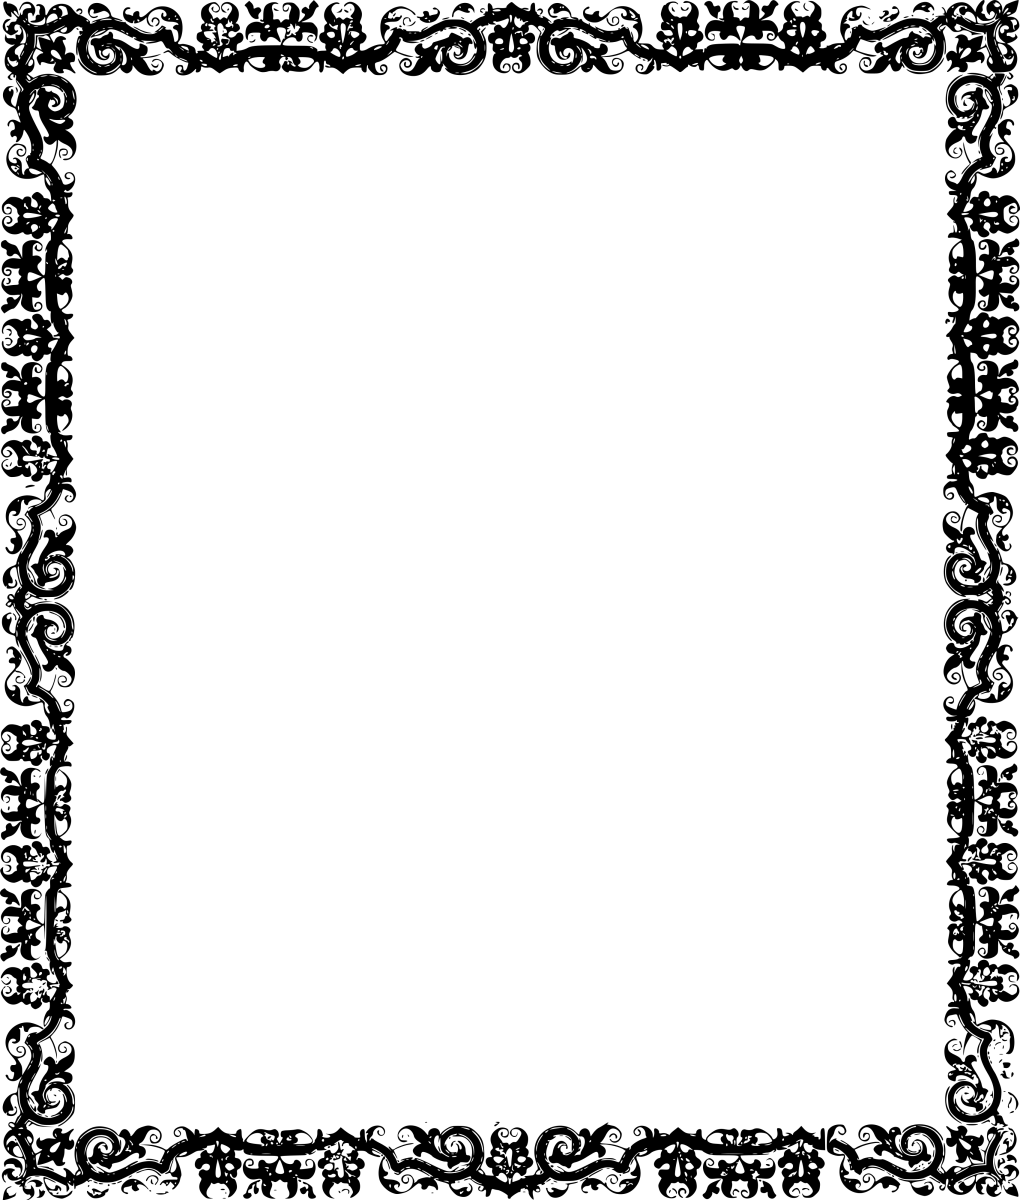 Music Celtic frame border